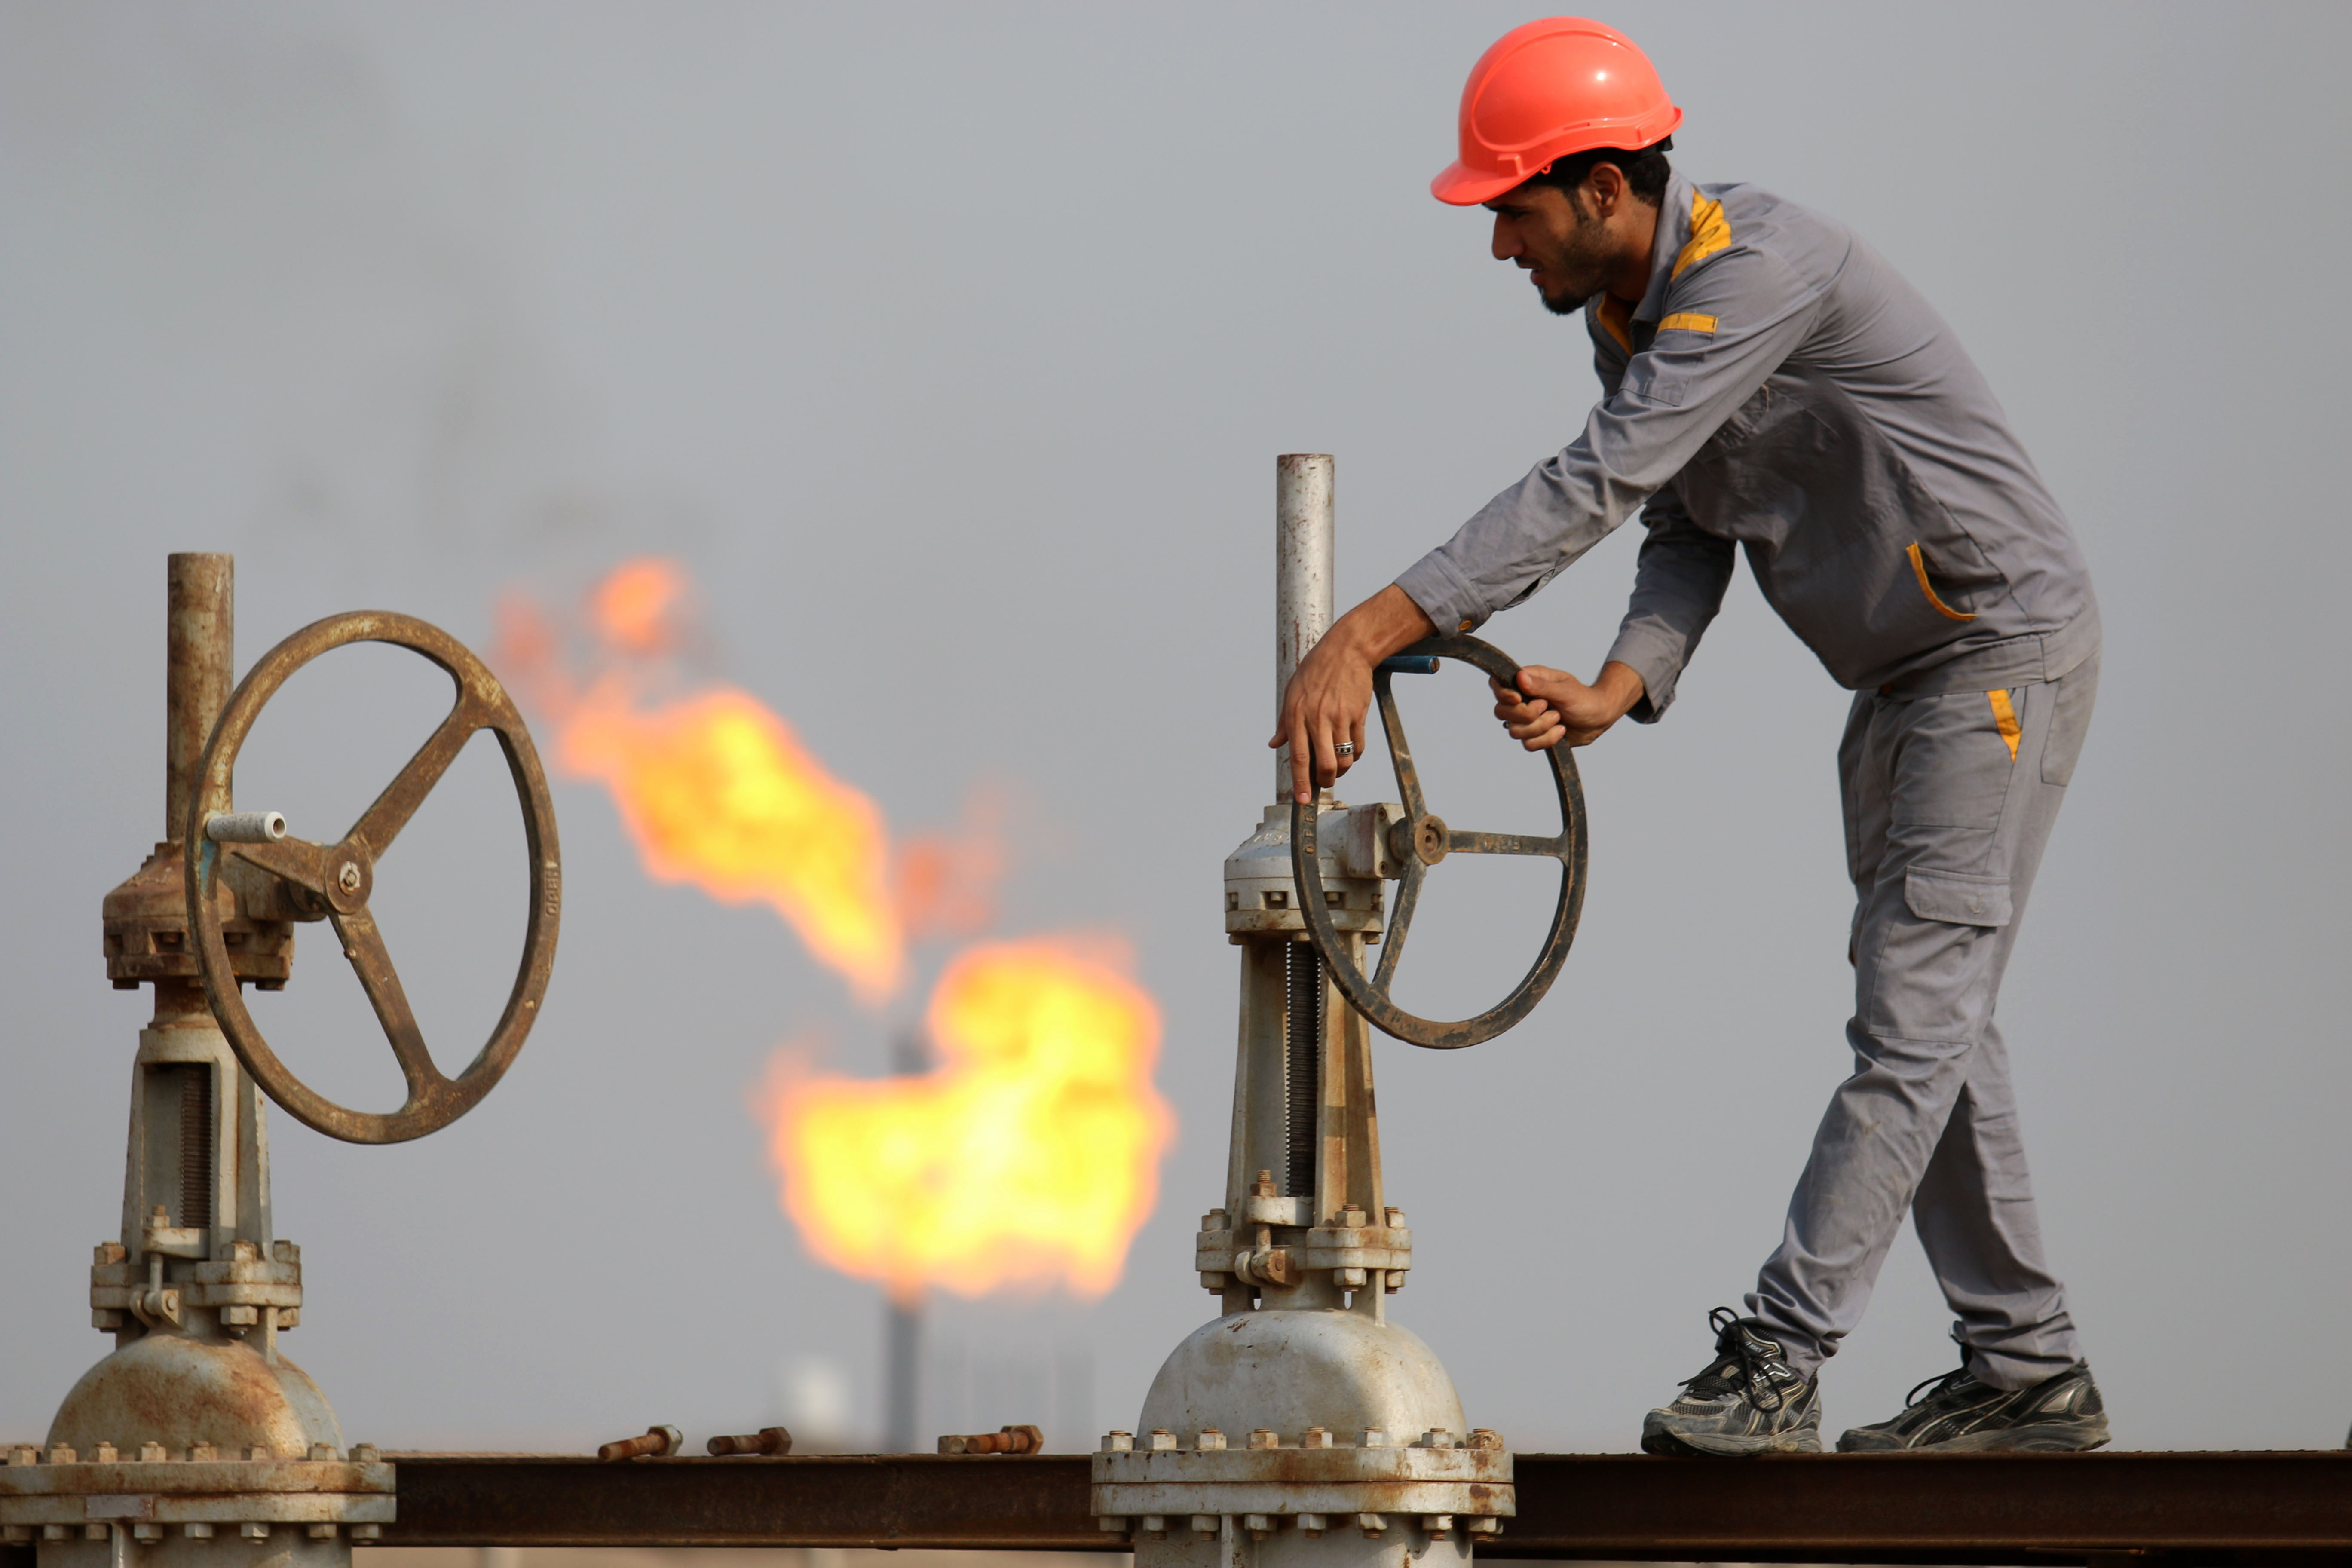 An Iraqi labourer works at an oil refinery in the southern town Nasiriyah on October 30, 2015.